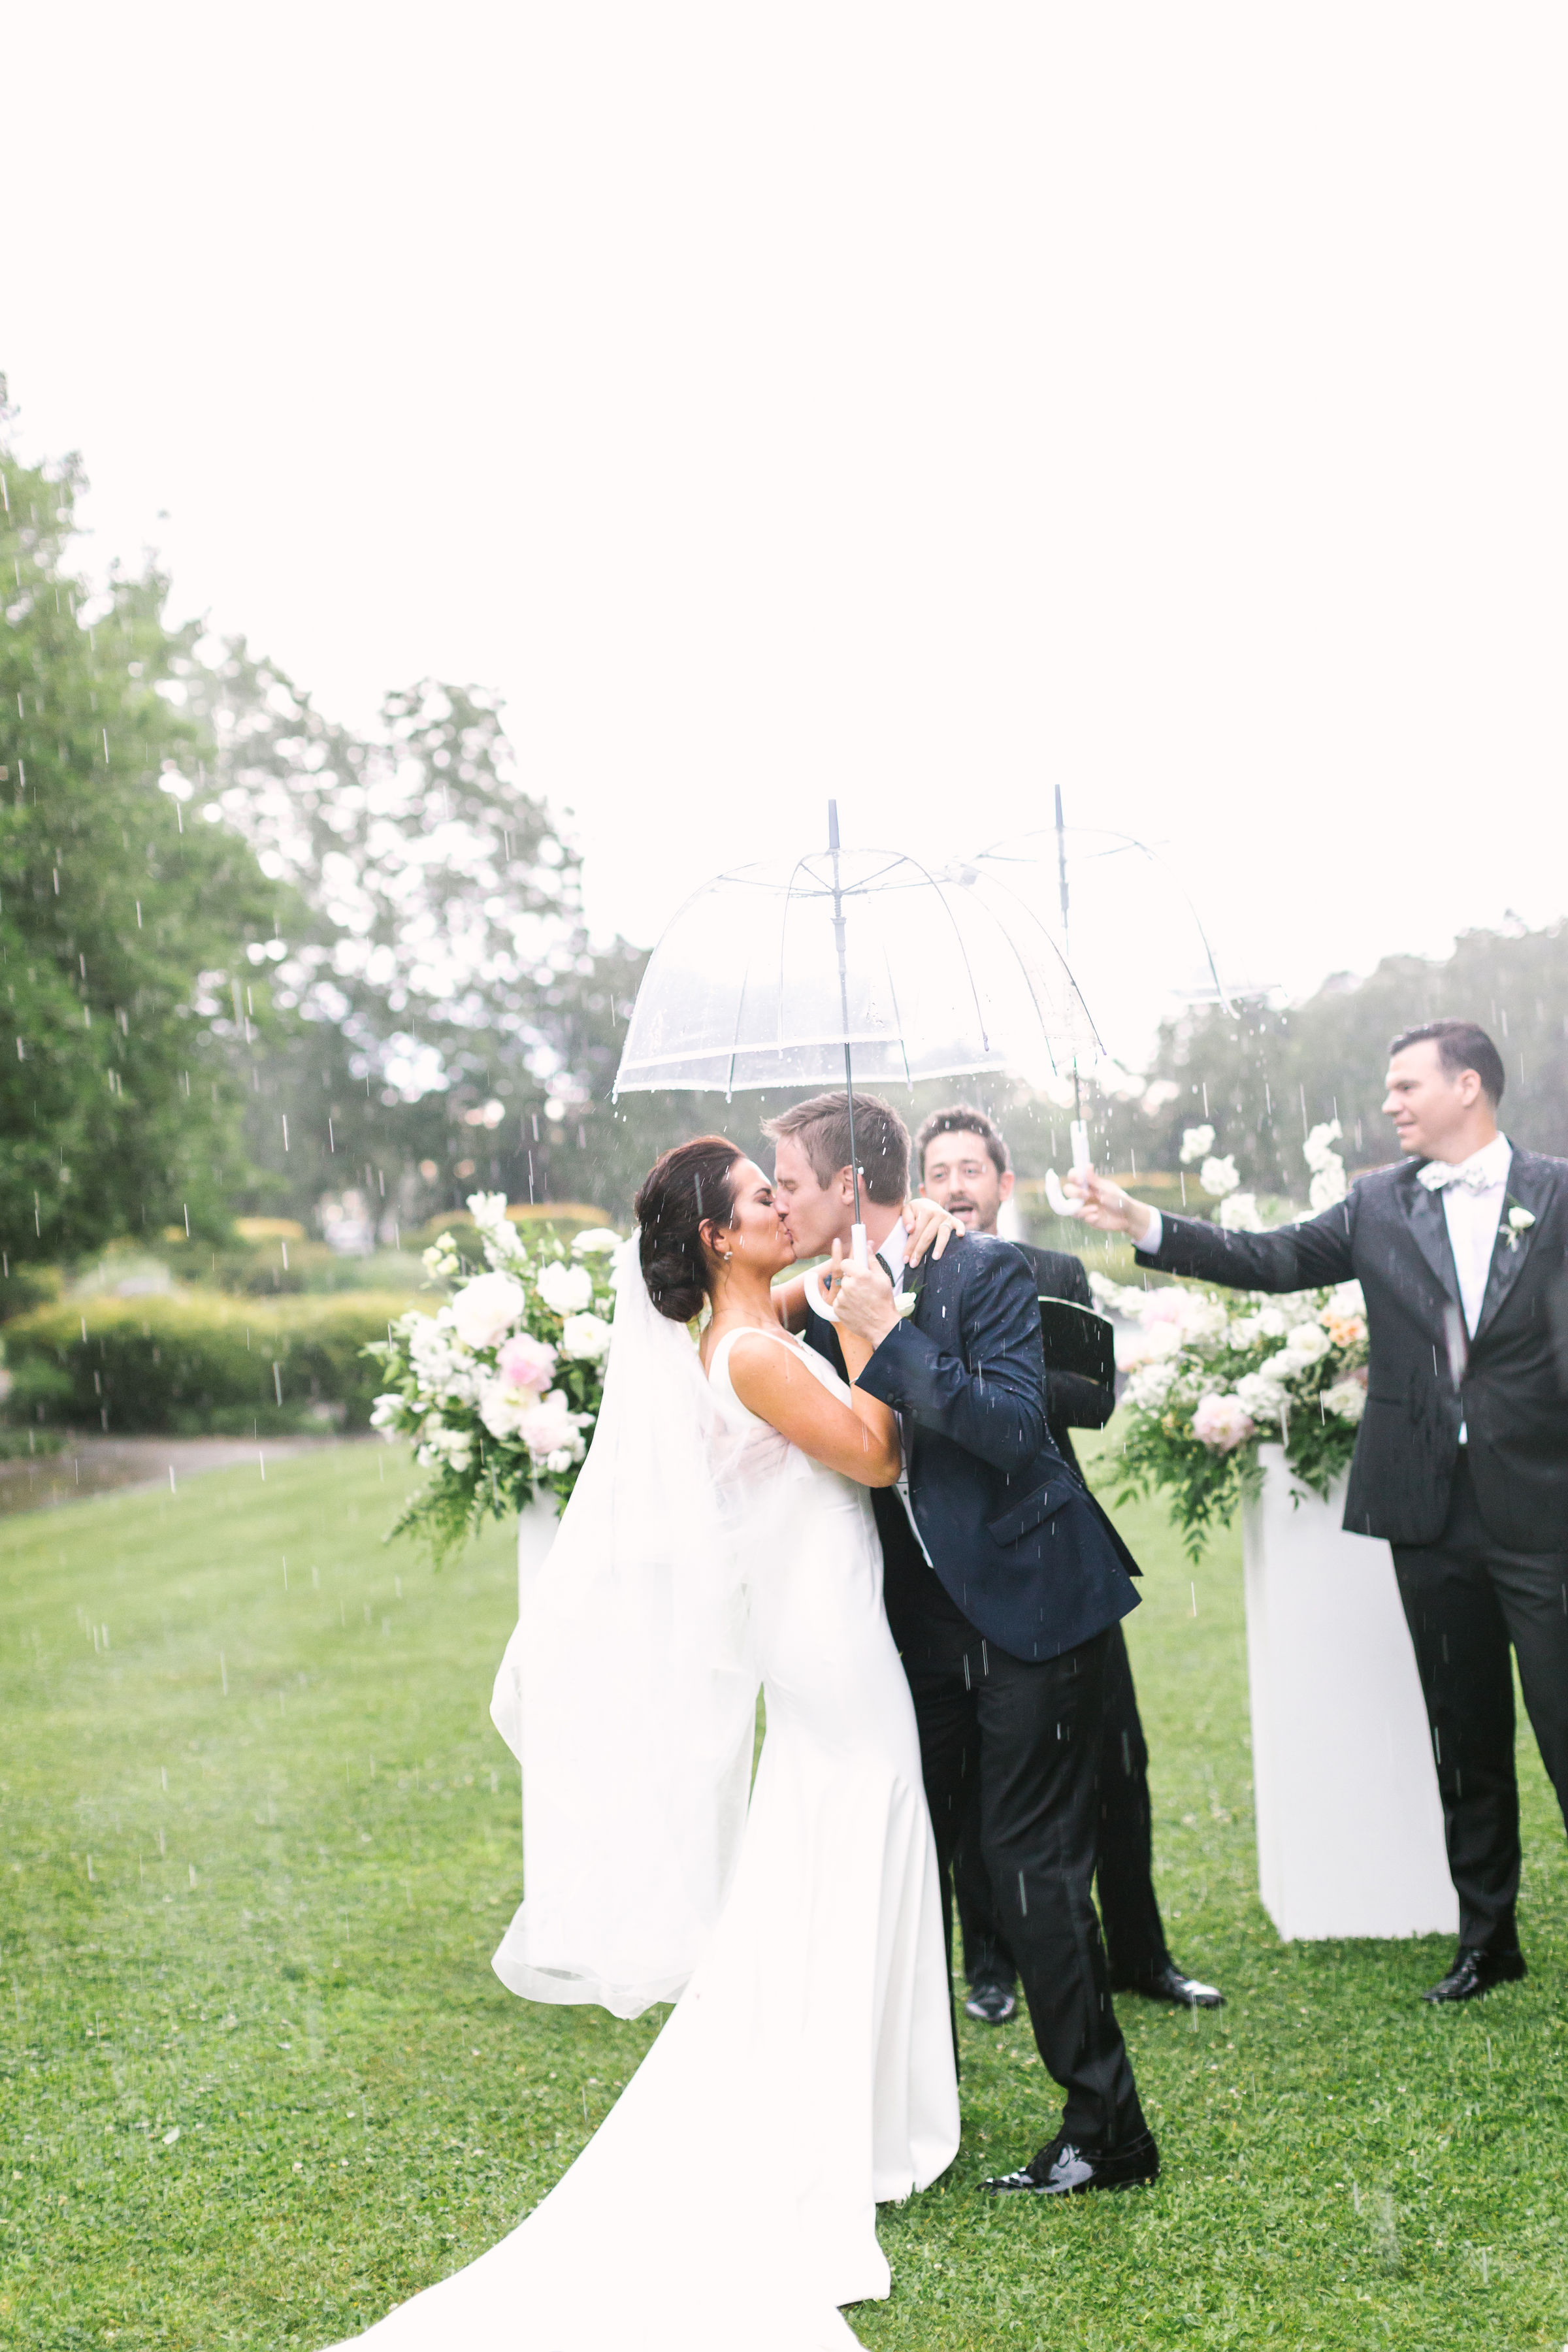 Erin-And-Jimmy-Ceremony-Rain-Ivory-and-Vine.jpg